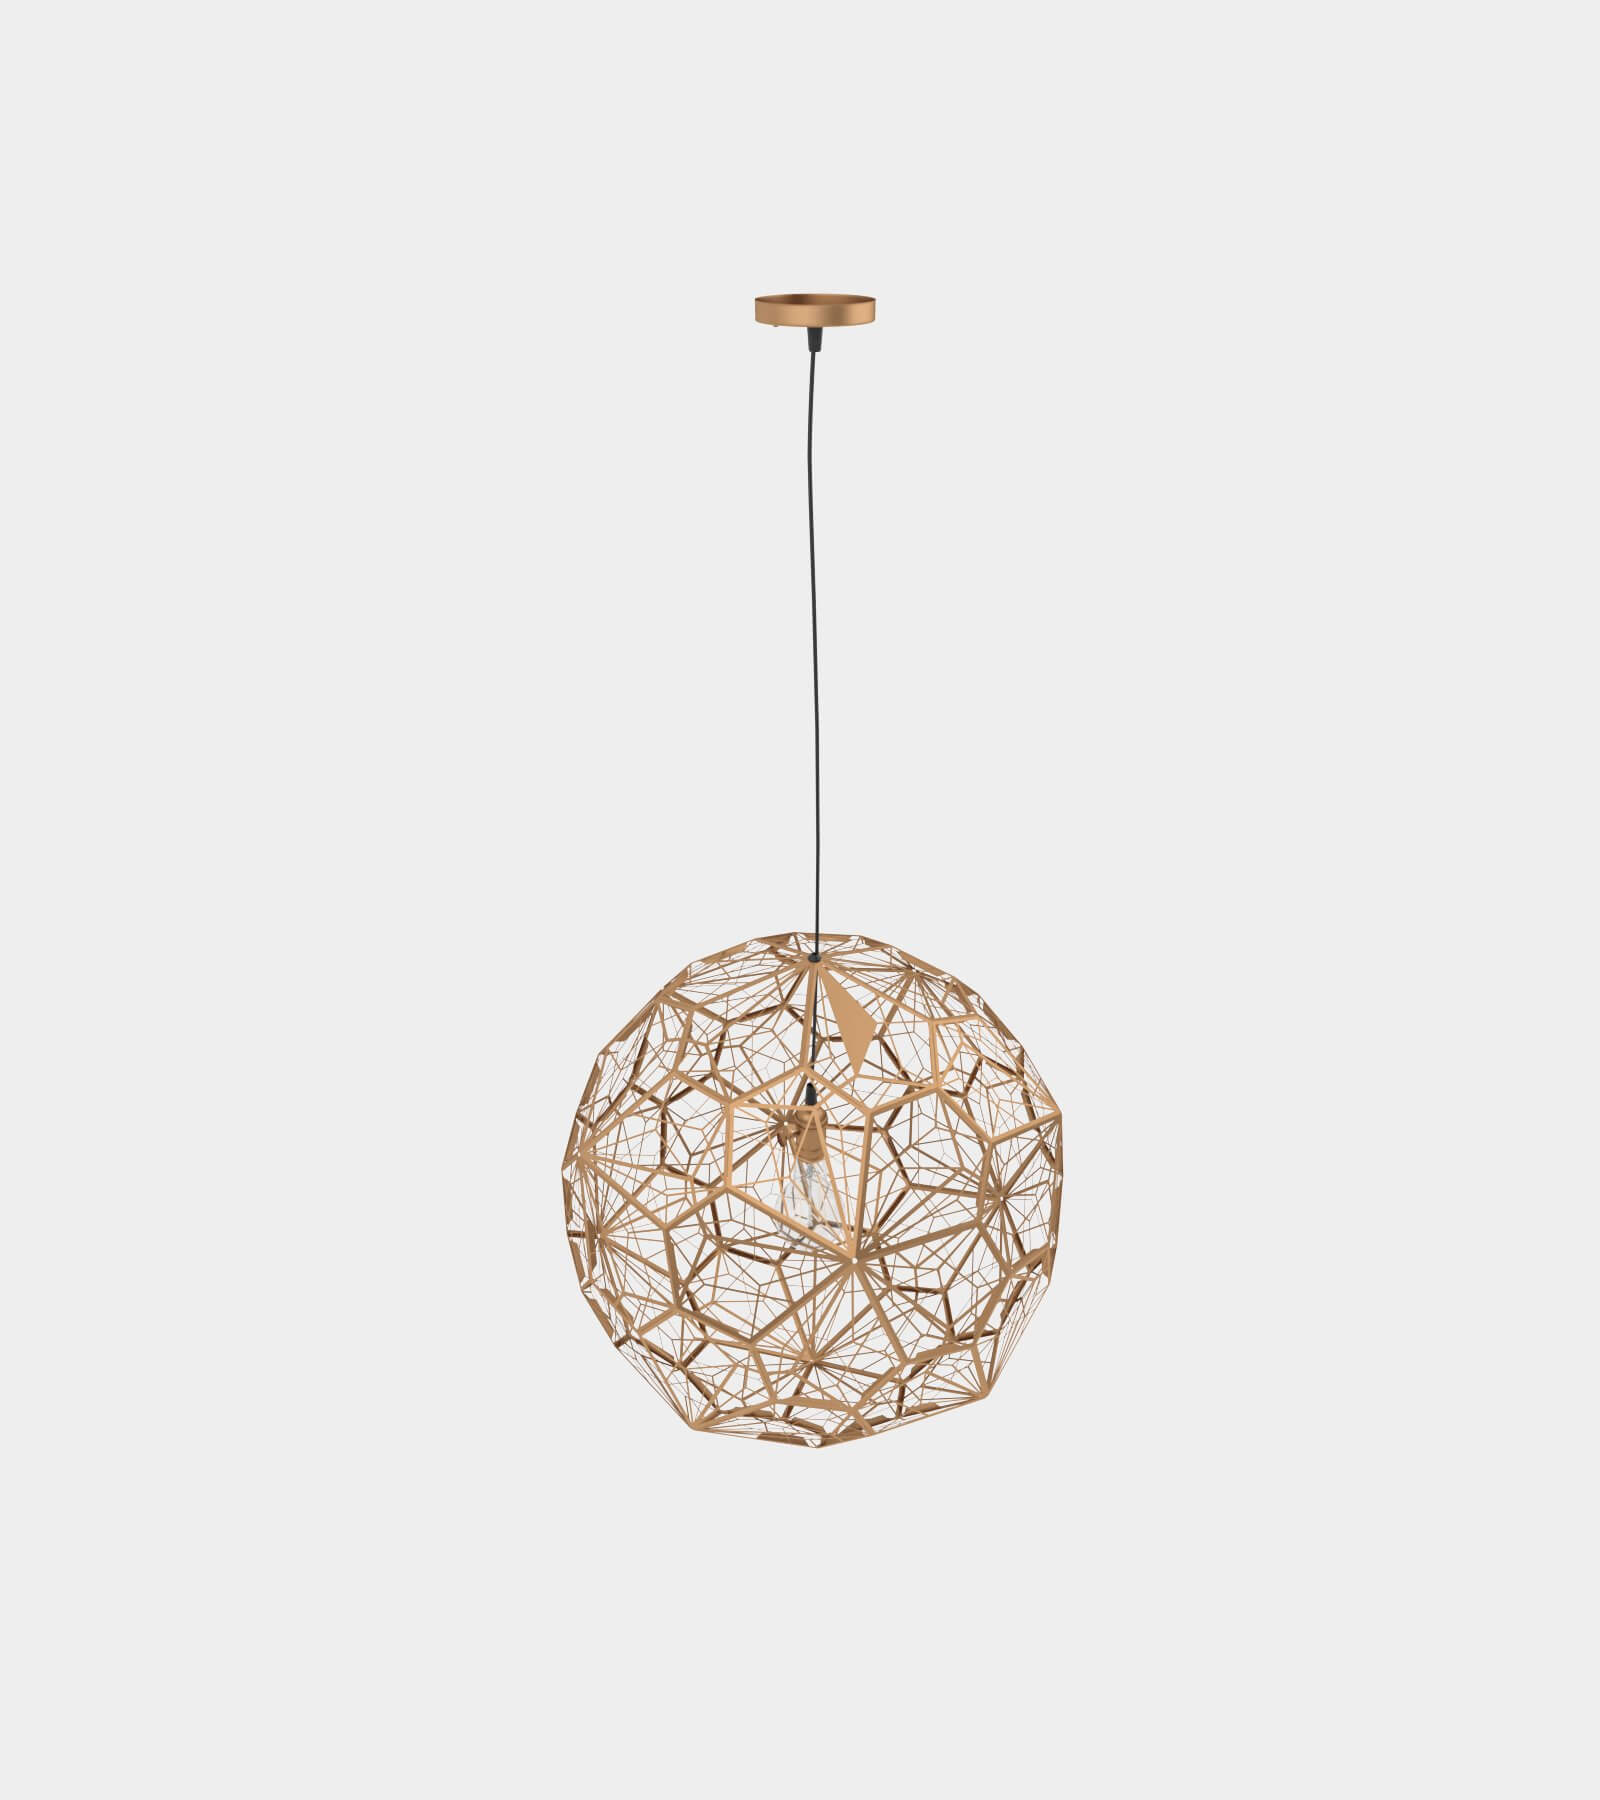 Modern metal copper pendant lamp 2 - 3D Model